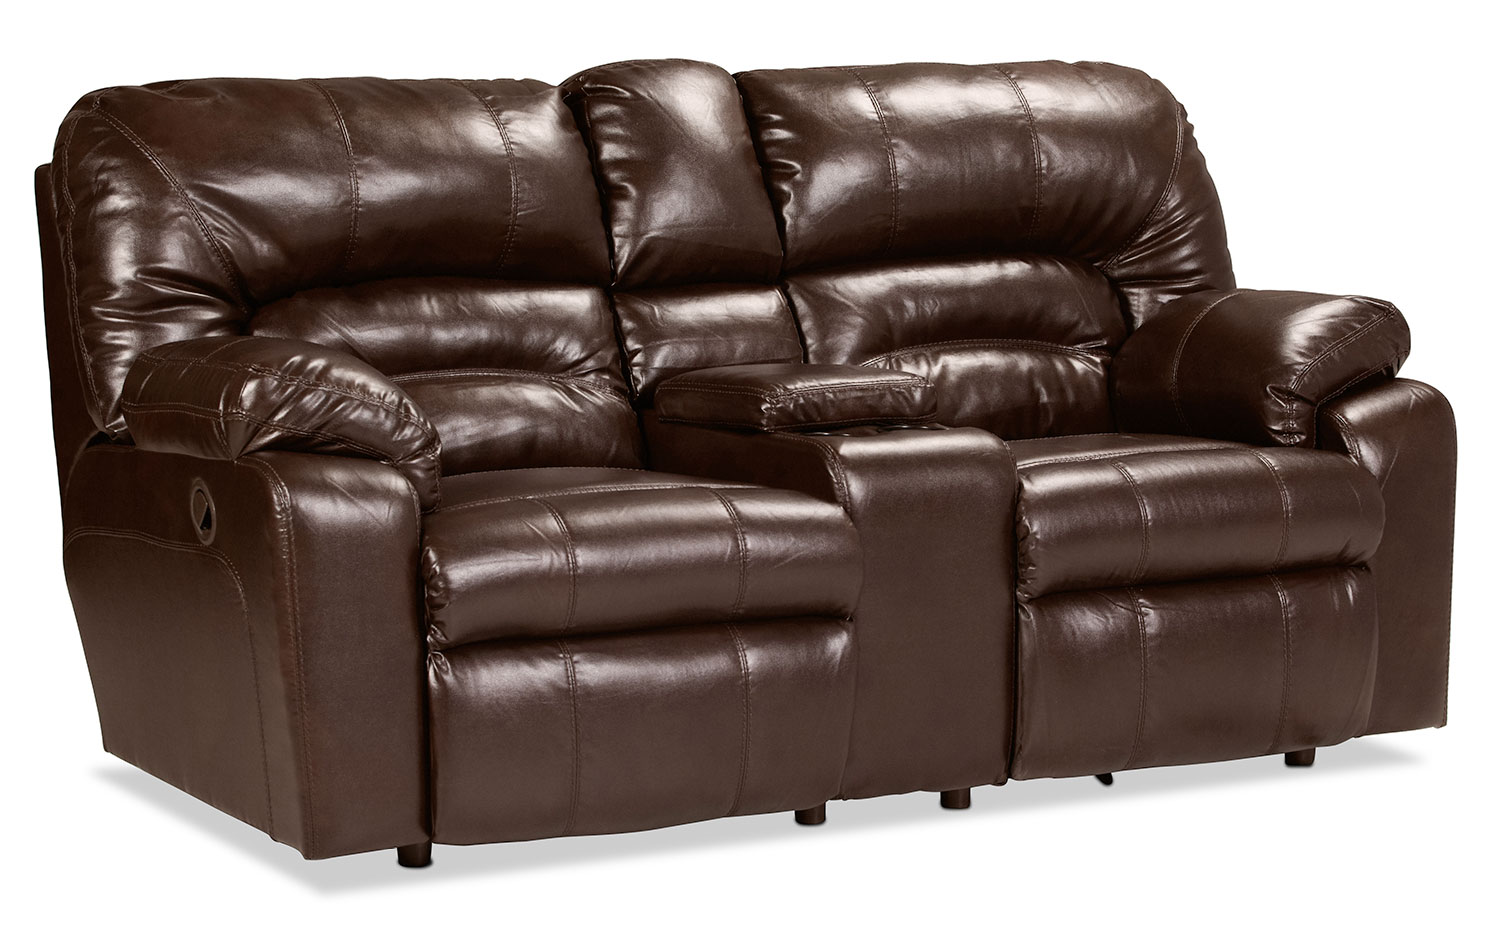 Chemineeholz Aufbewahrung unwind reclining loveseat with console java levin furniture